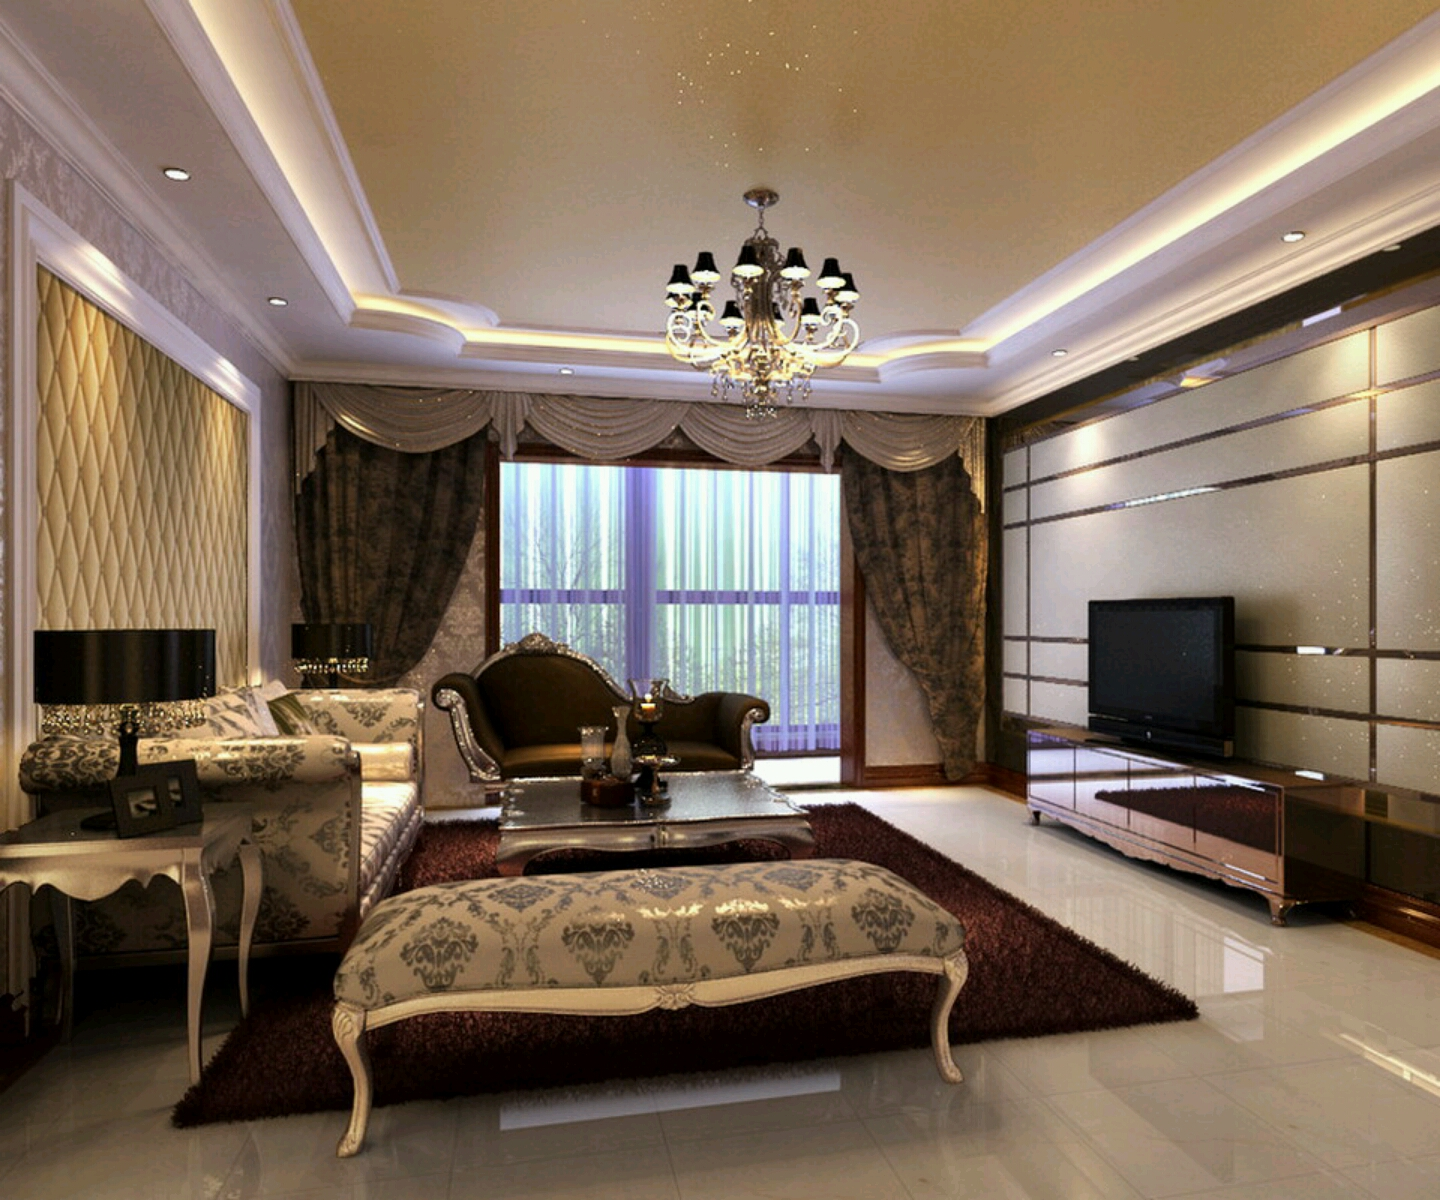 New home designs latest luxury homes interior decoration for Room interior design ideas